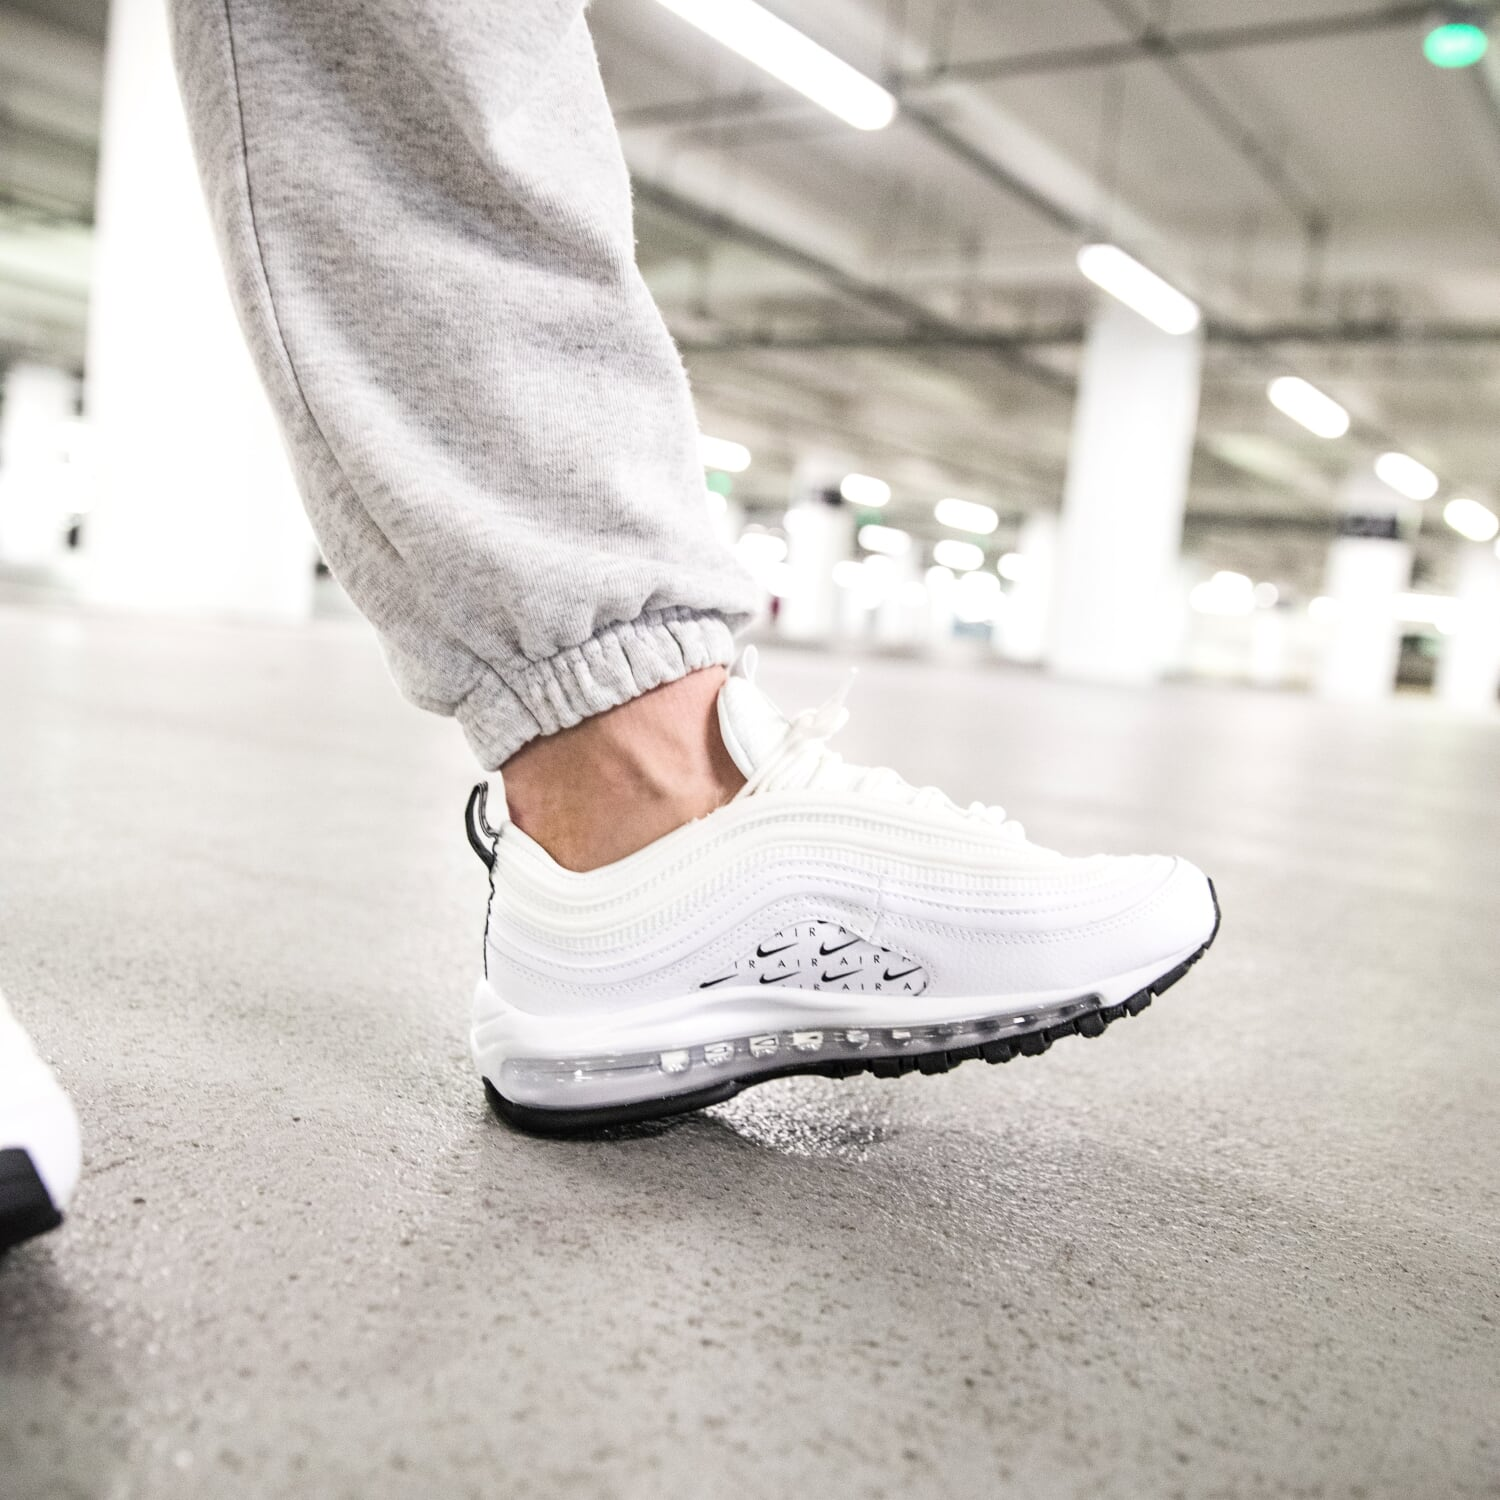 21a661c3b5f MYTHFOCUS  Nike Air Max 97 LX Overbranded  White  - Sneaker Myth